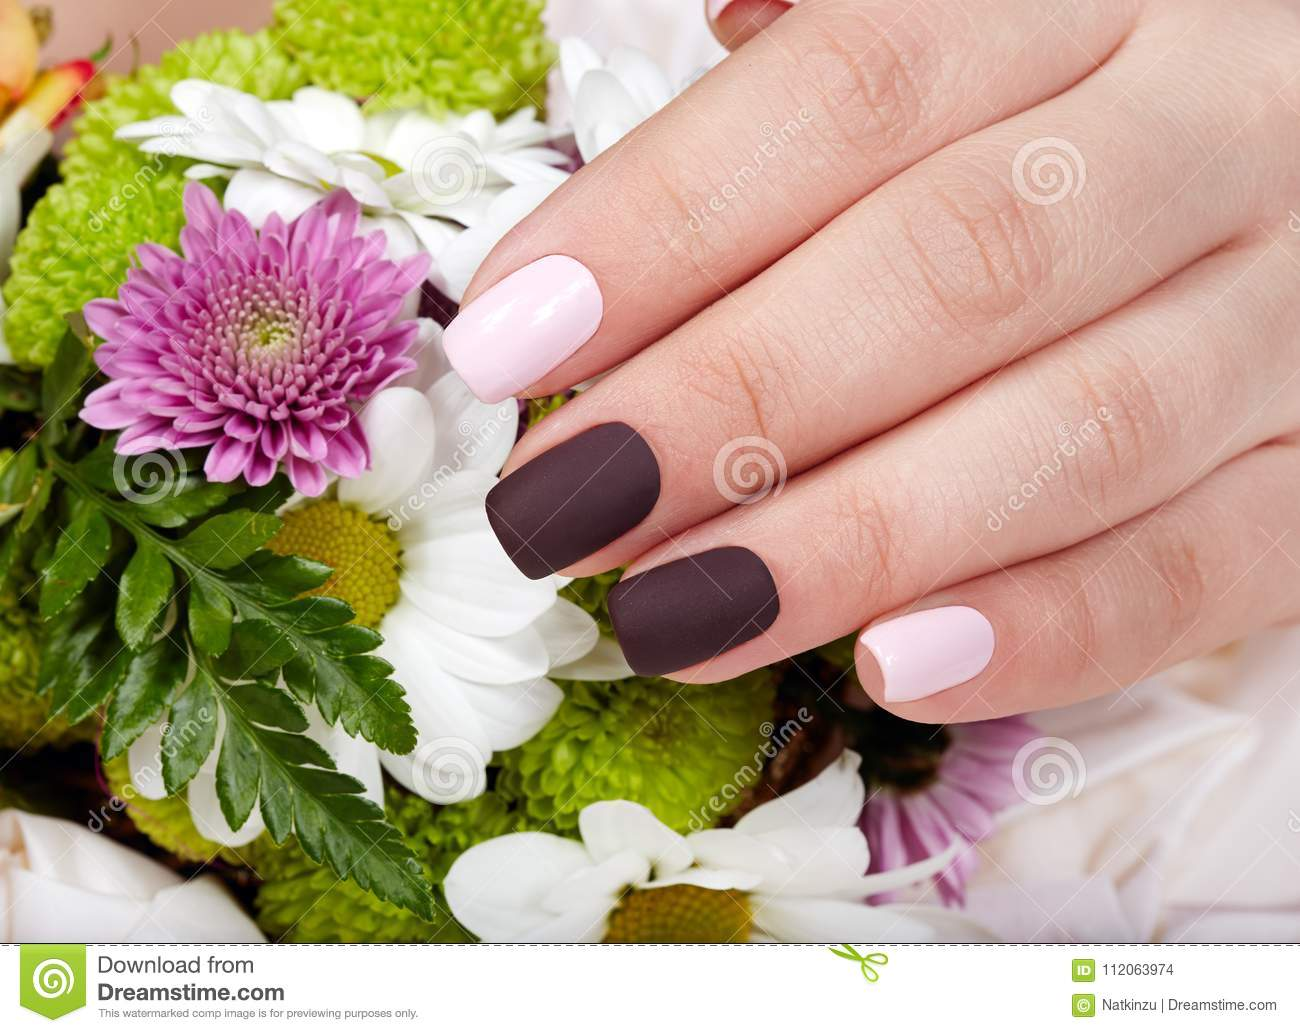 Hand with manicured nails colored with pink and purple nail polish download comp izmirmasajfo